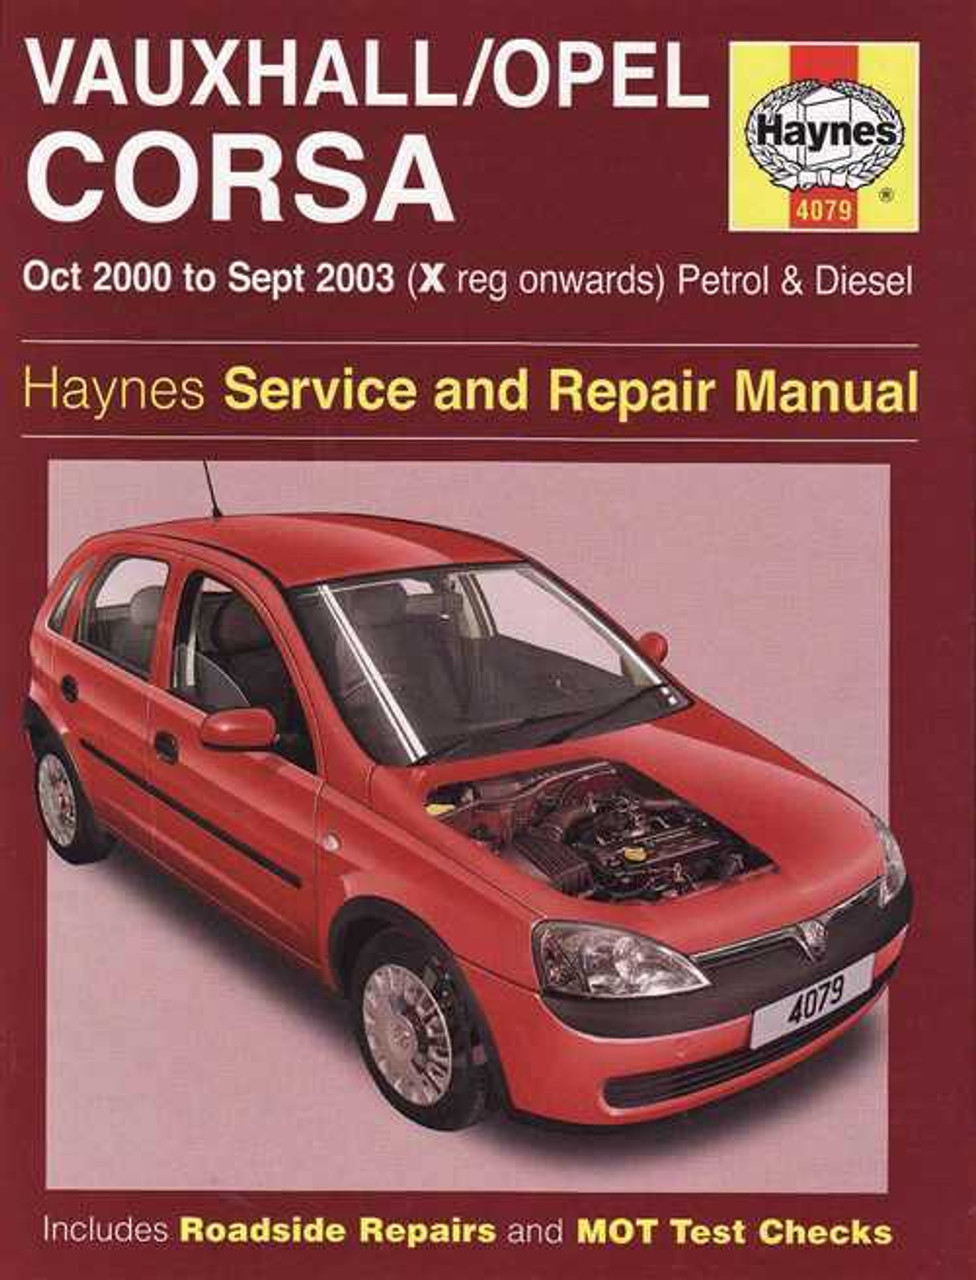 holden barina vauxhall opel corsa petrol diesel 2000 2003 rh automotobookshop com au barina workshop manual tk barina workshop manual free download